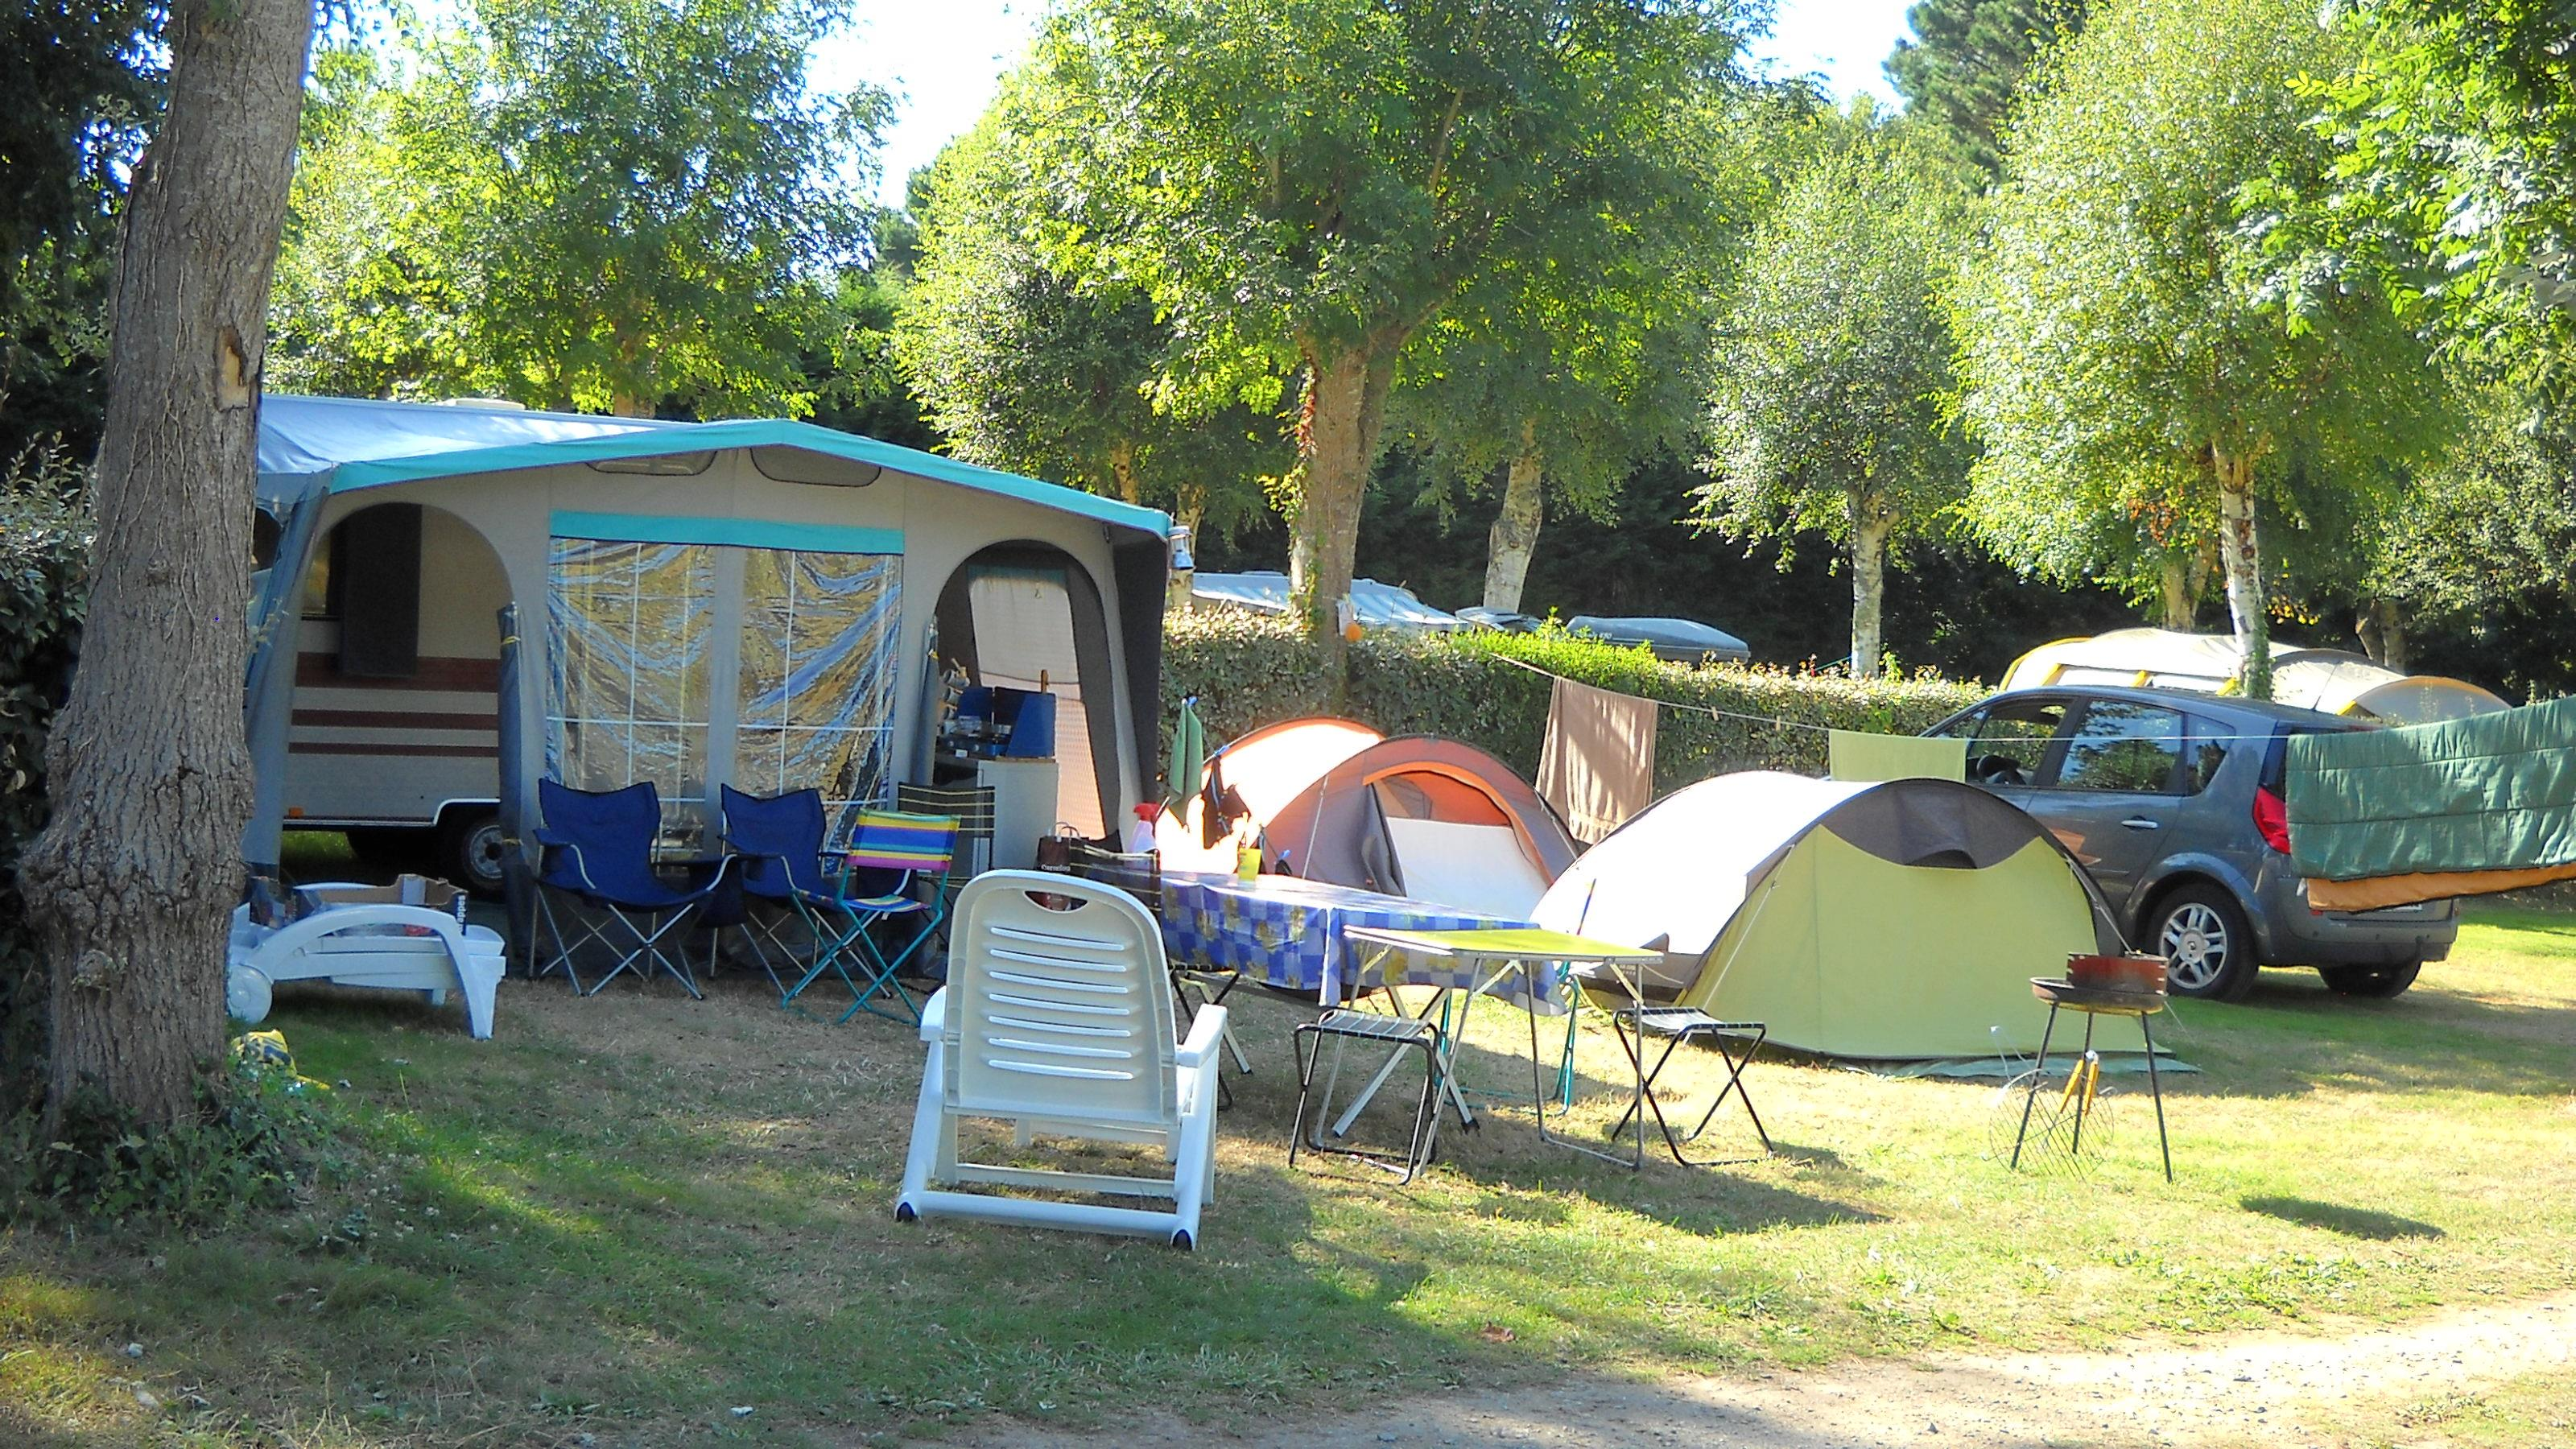 Camping les Genets, Penmarch, Finistère